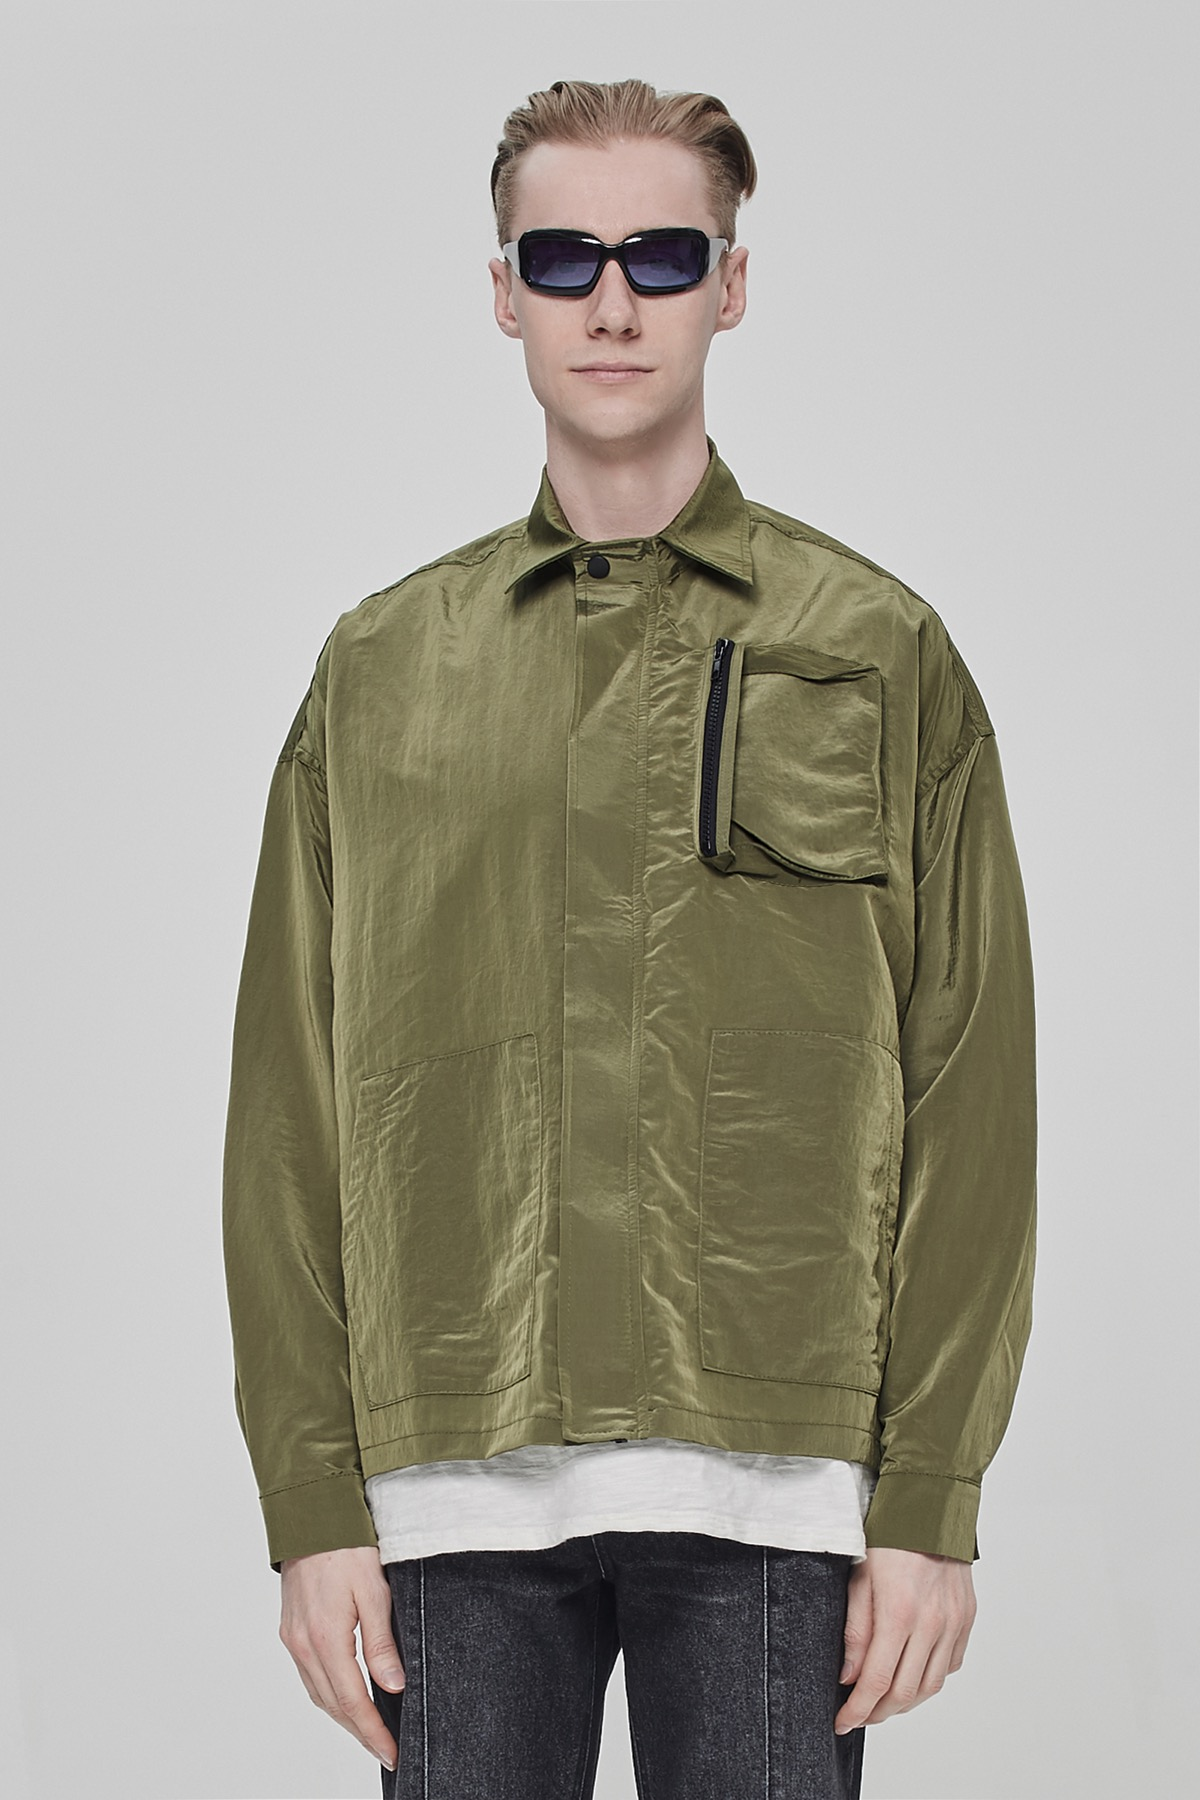 GREEN METAL POCKET JACKET V2